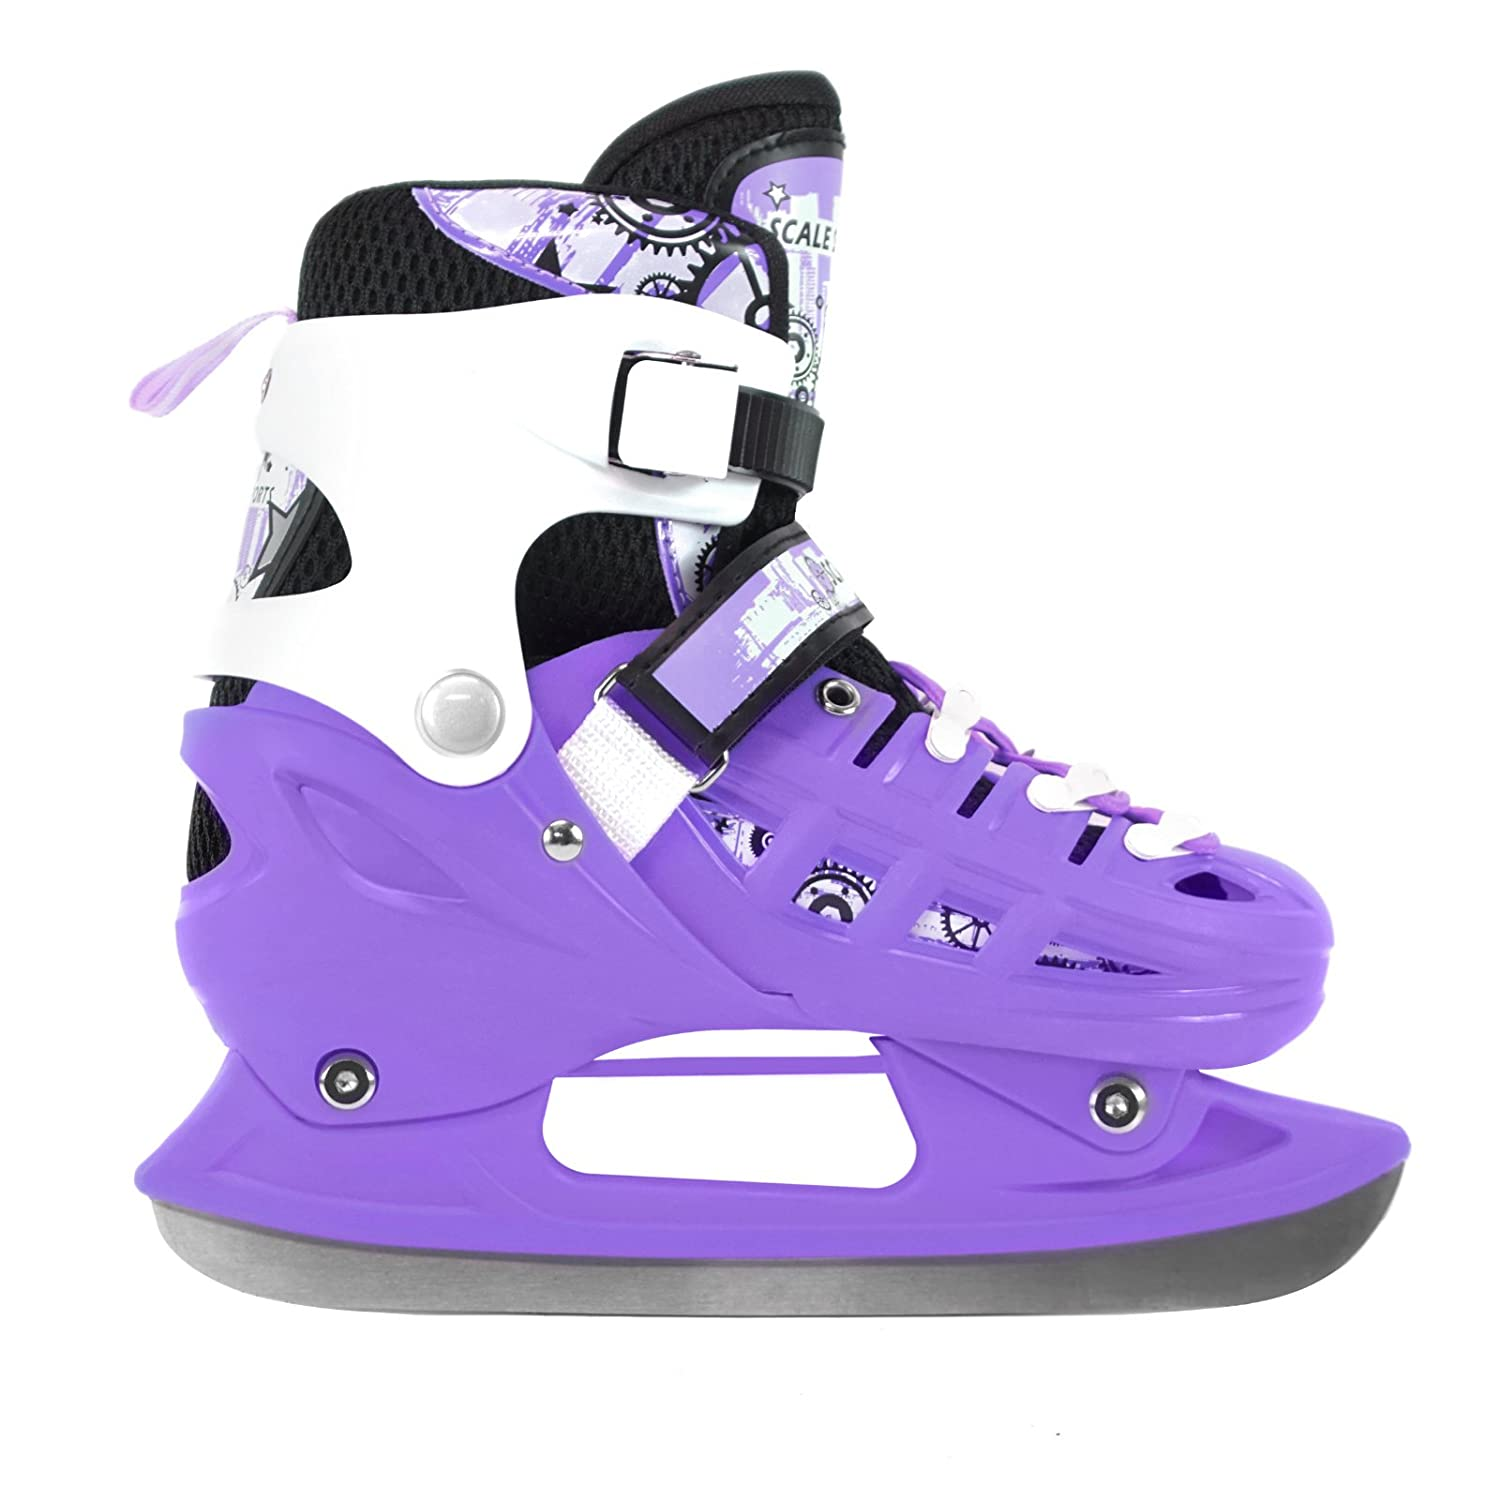 Adjustable Inline Skates Ice Skates Combo Pack Gift Boxed for Kids Size from 13.5 Junior to 9 Adult